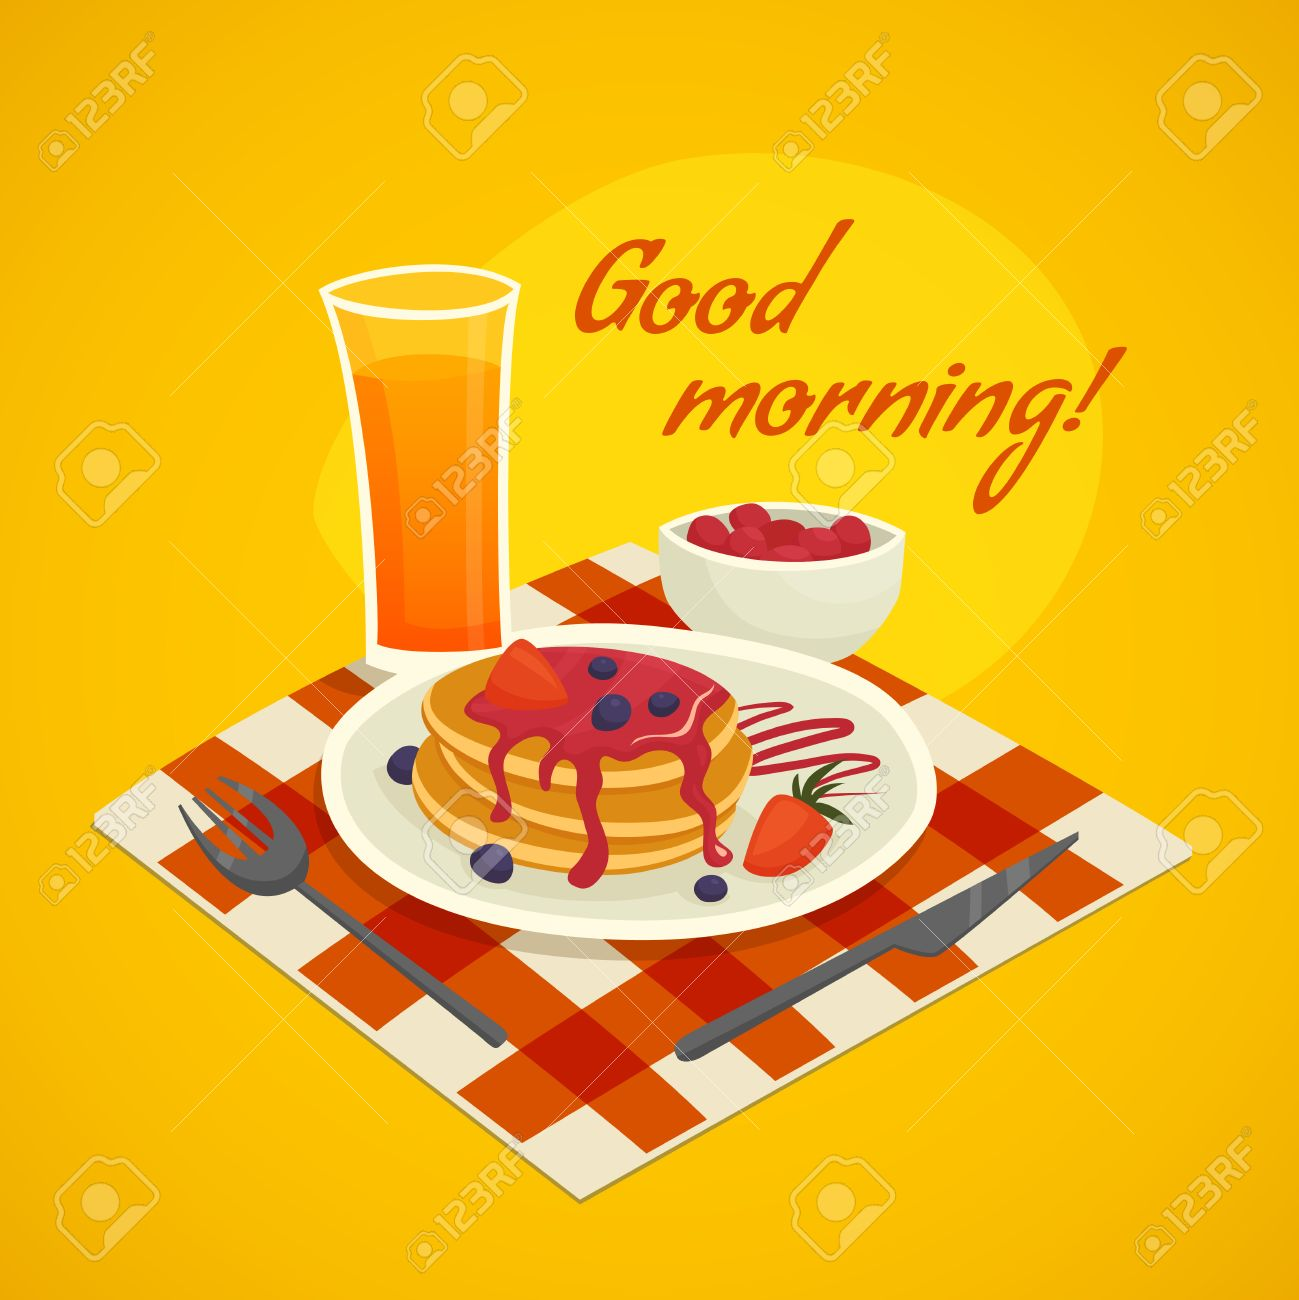 Glass juice cups design - Breakfast Design Concept With Glass Of Orange Juice Plate Of Pancakes And Good Morning Wishing Vector